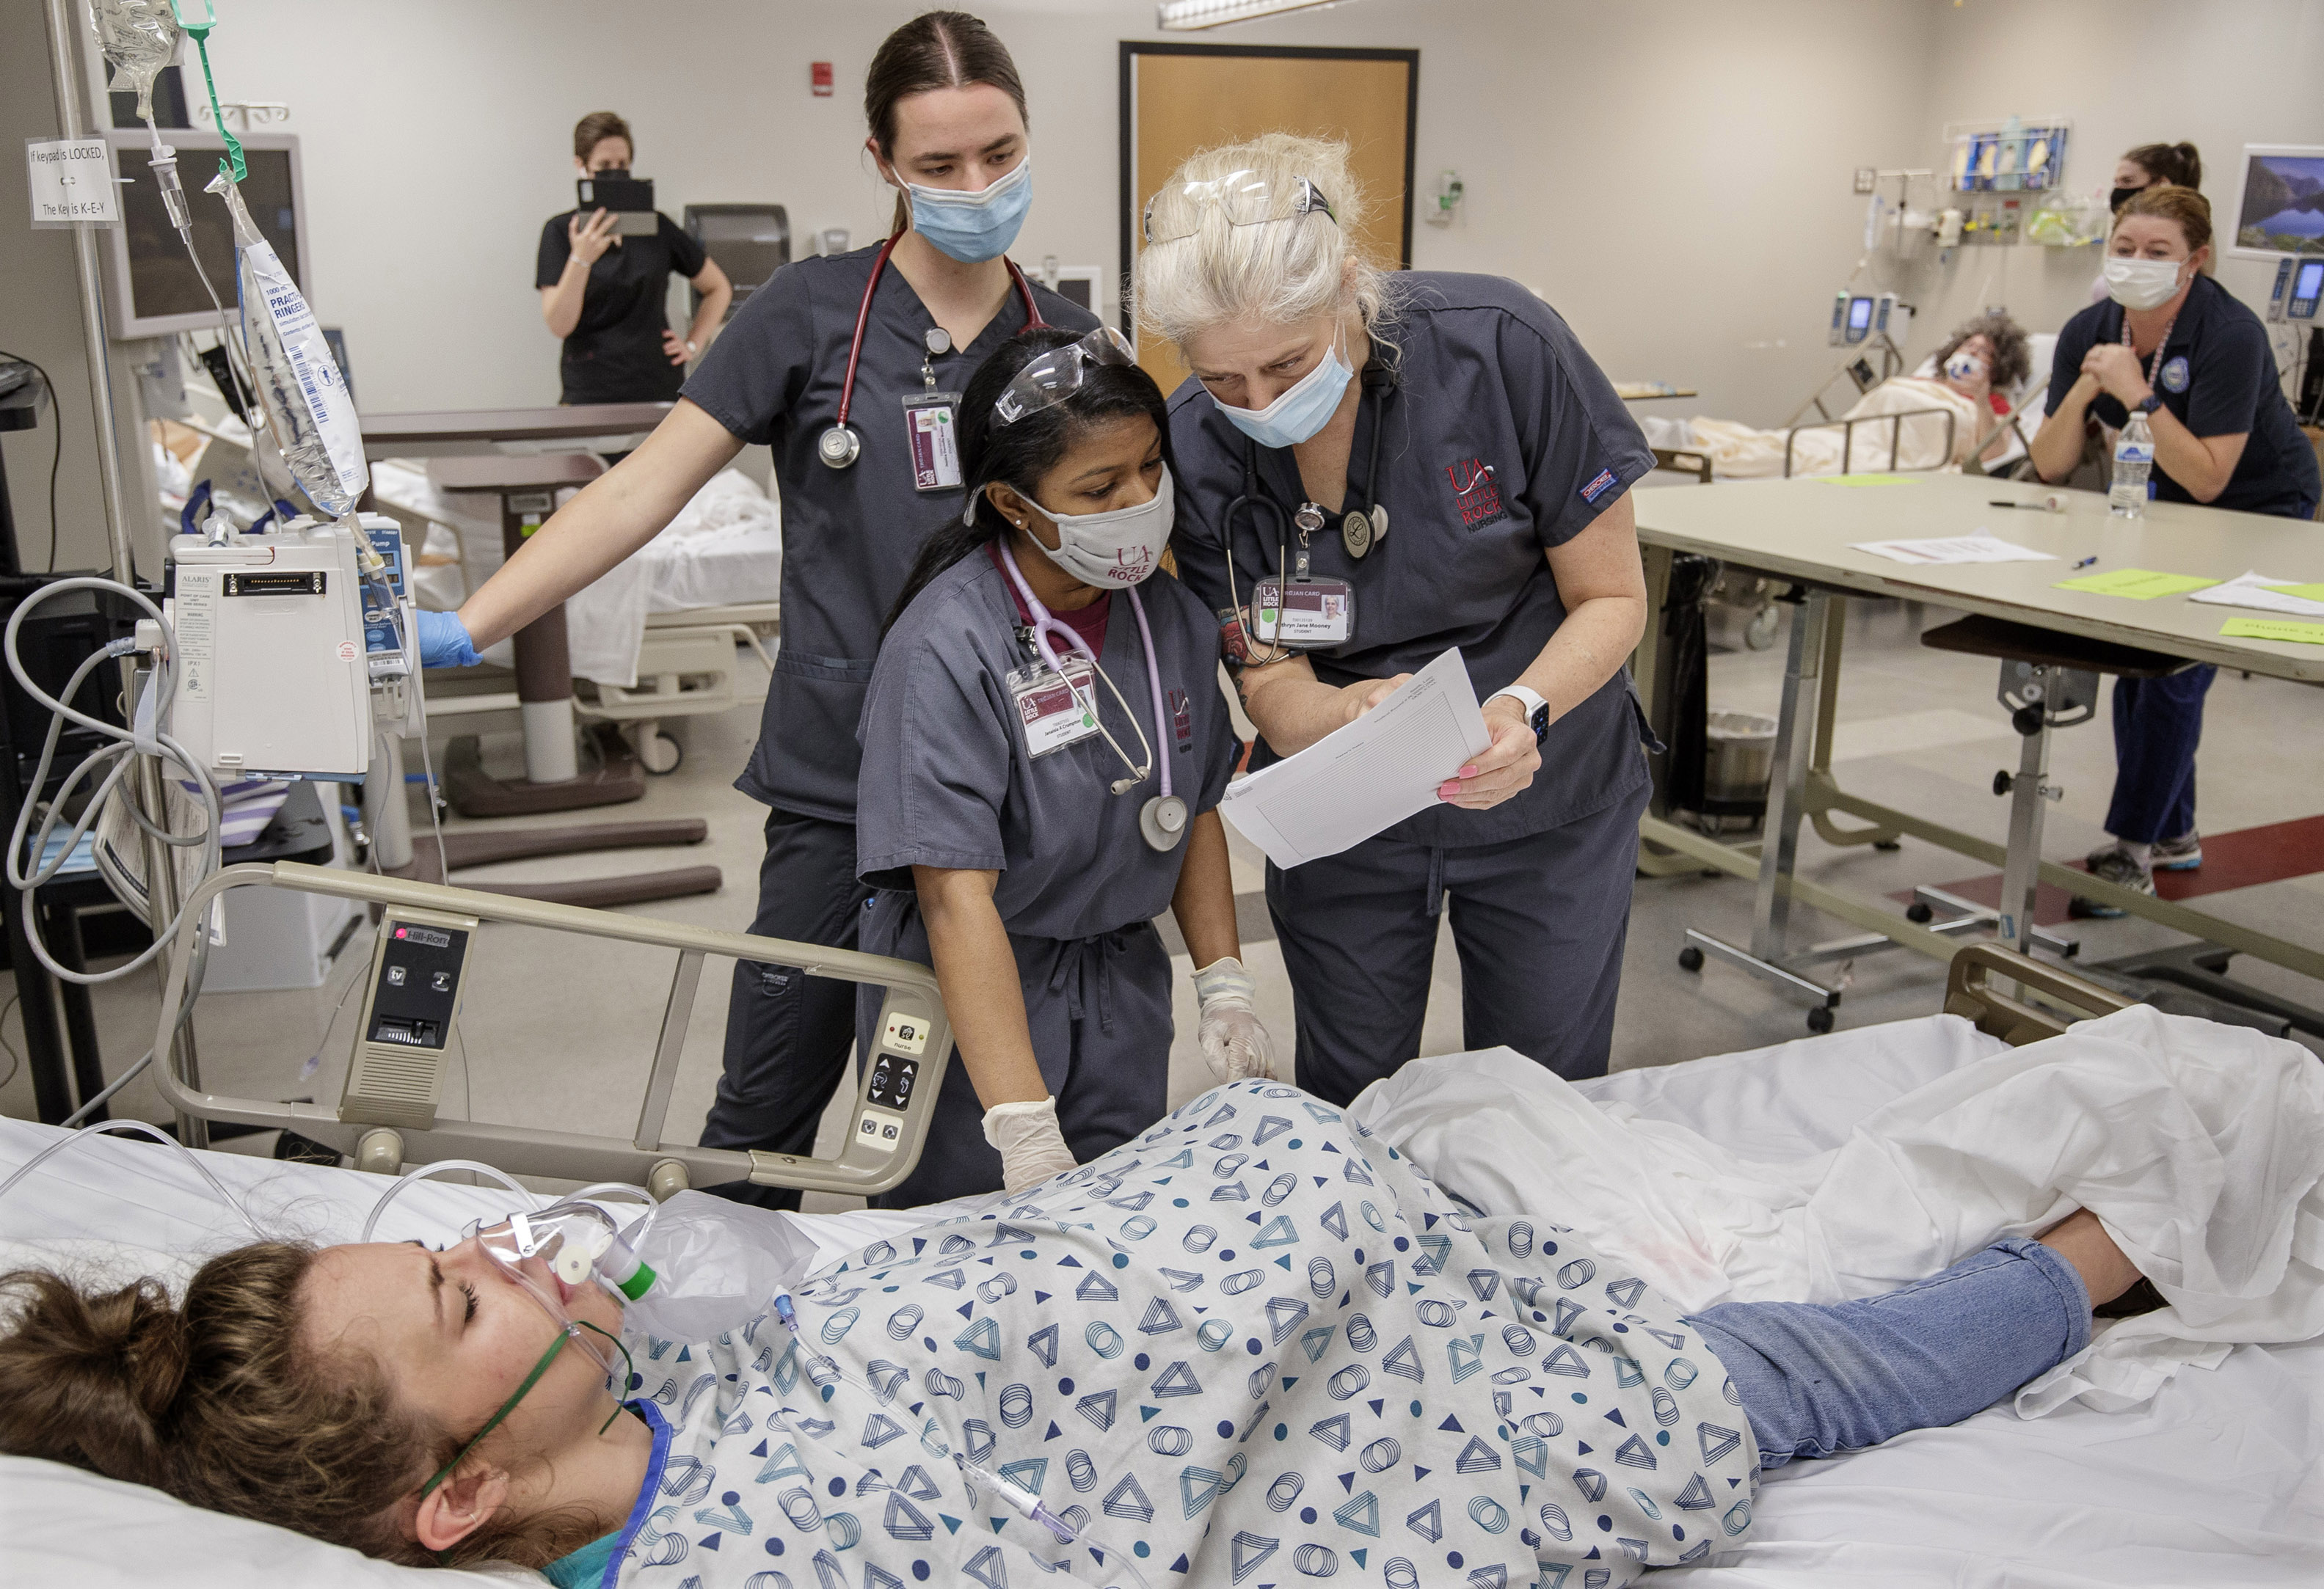 Senior nursing students in the UA Little Rock School of Nursing prepare for transition to practice by participating in an Emergency Room simulation in the Center for Simulation Innovation.